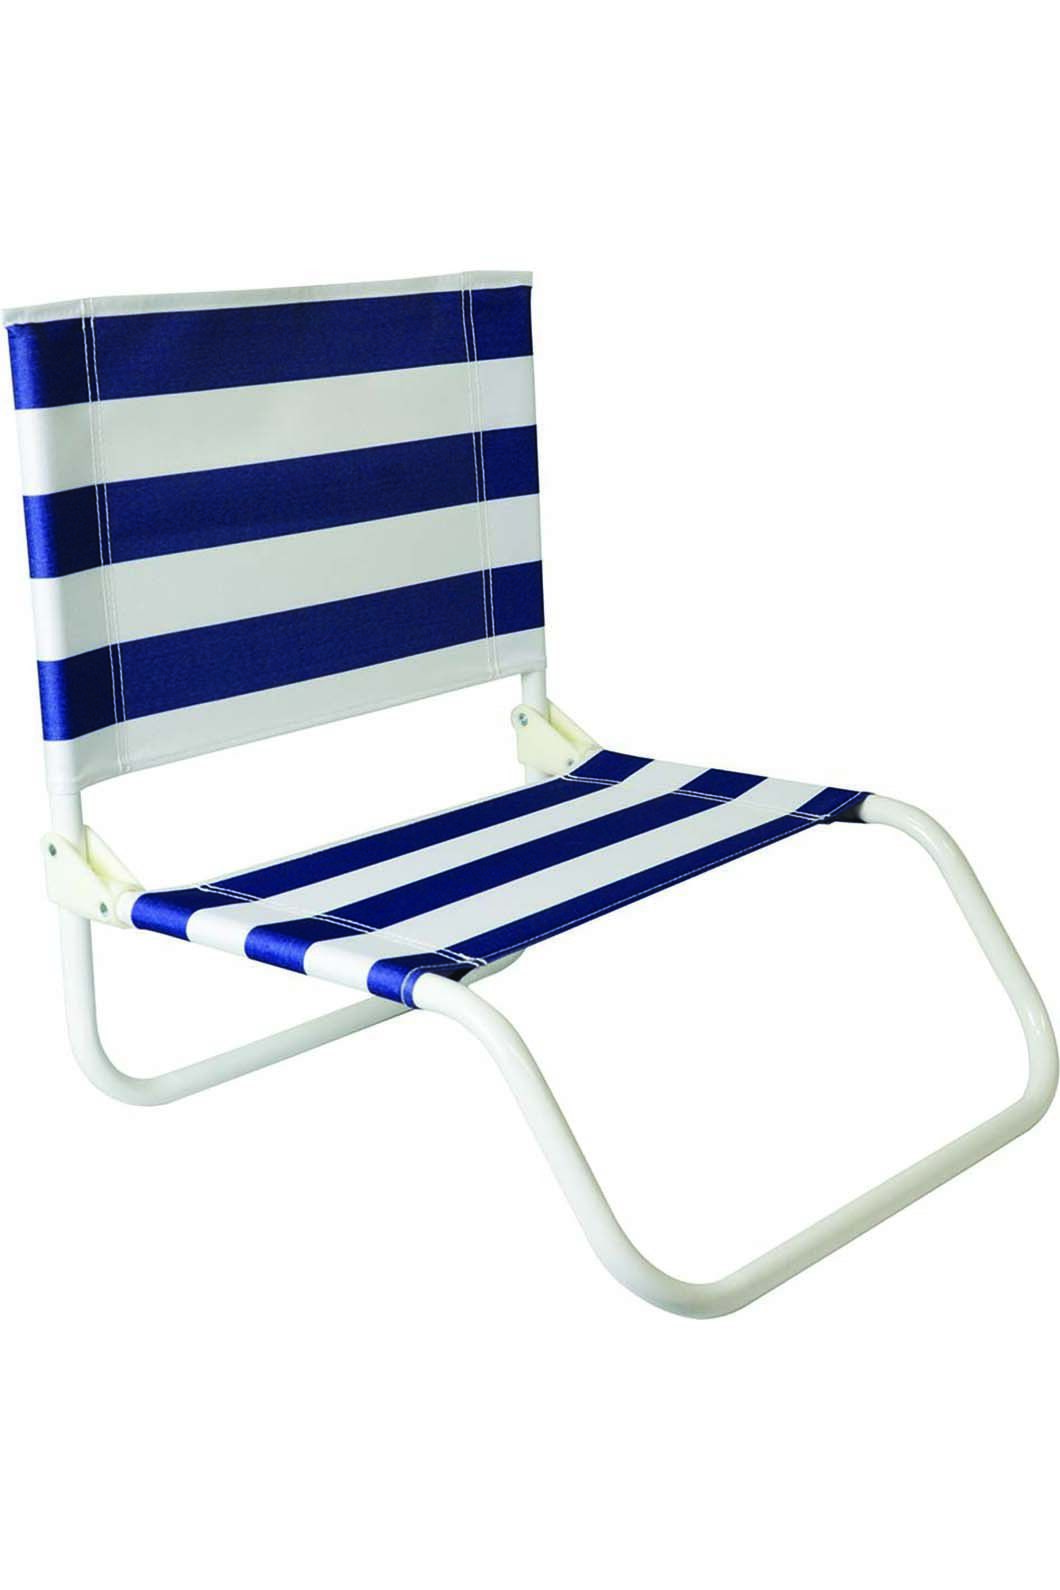 Folding Beach Chairtripe, None, hi-res